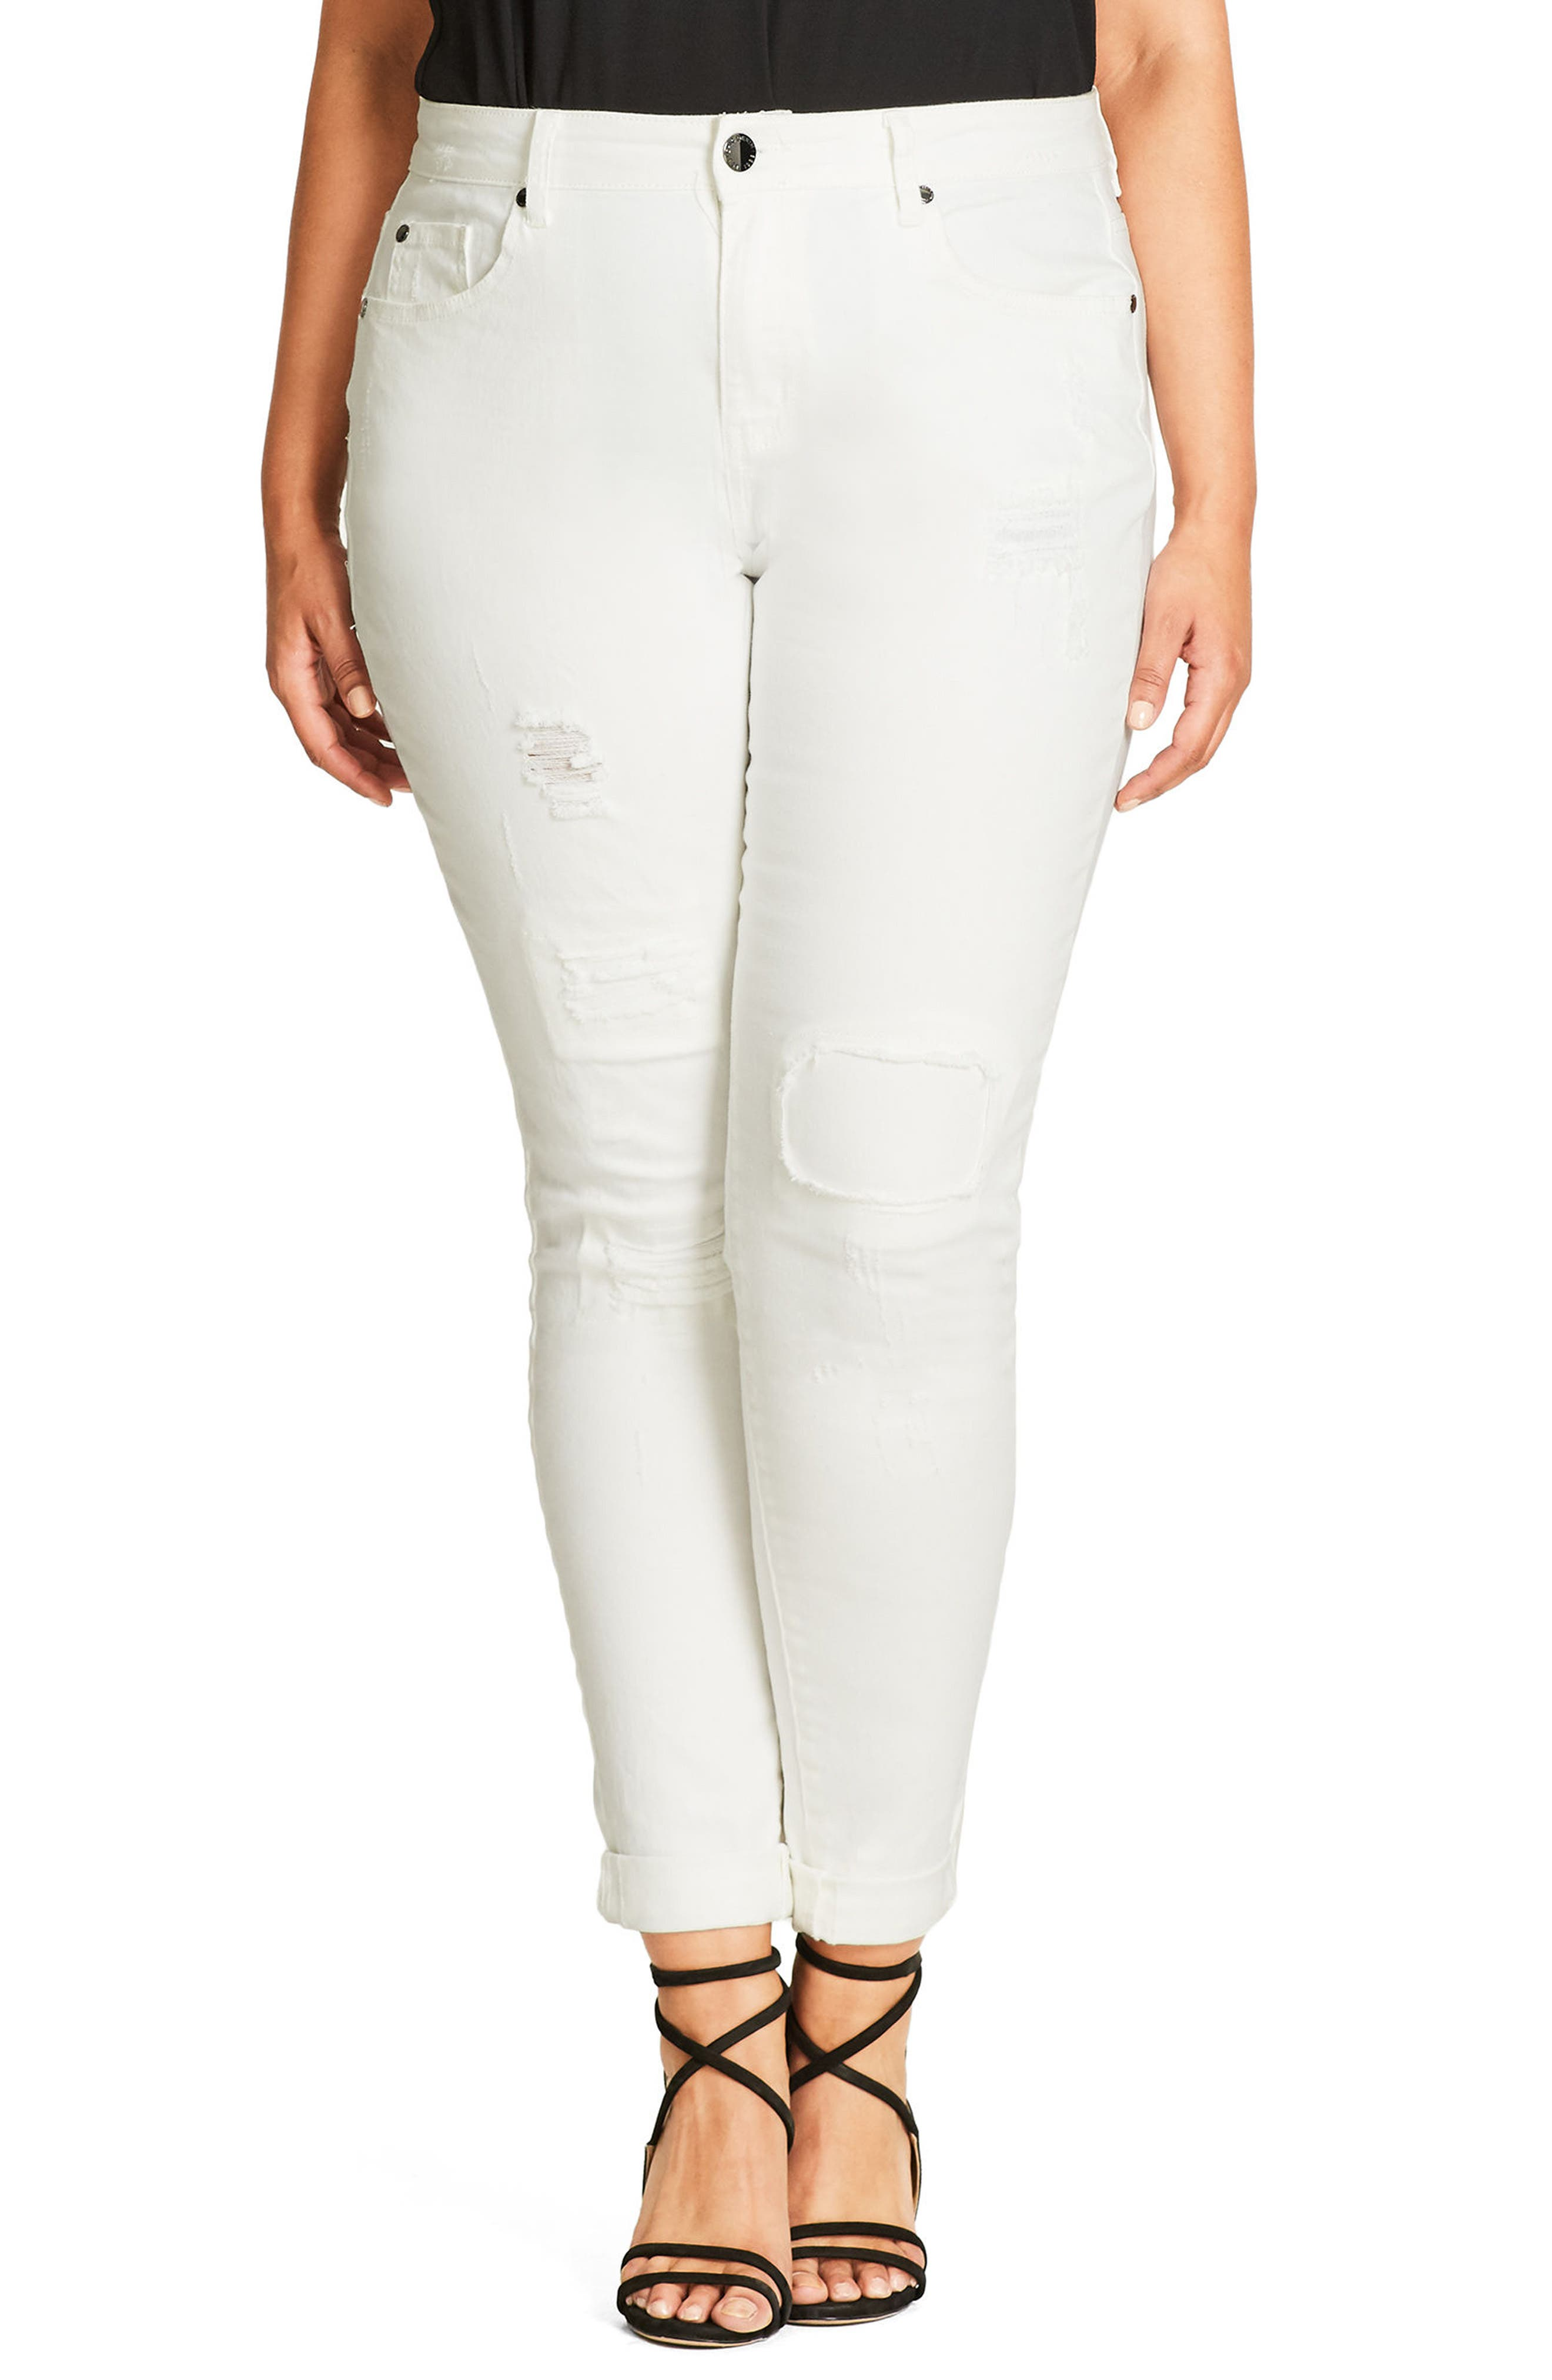 City Chic Patched Up Ripped Skinny Jeans (Plus Size)